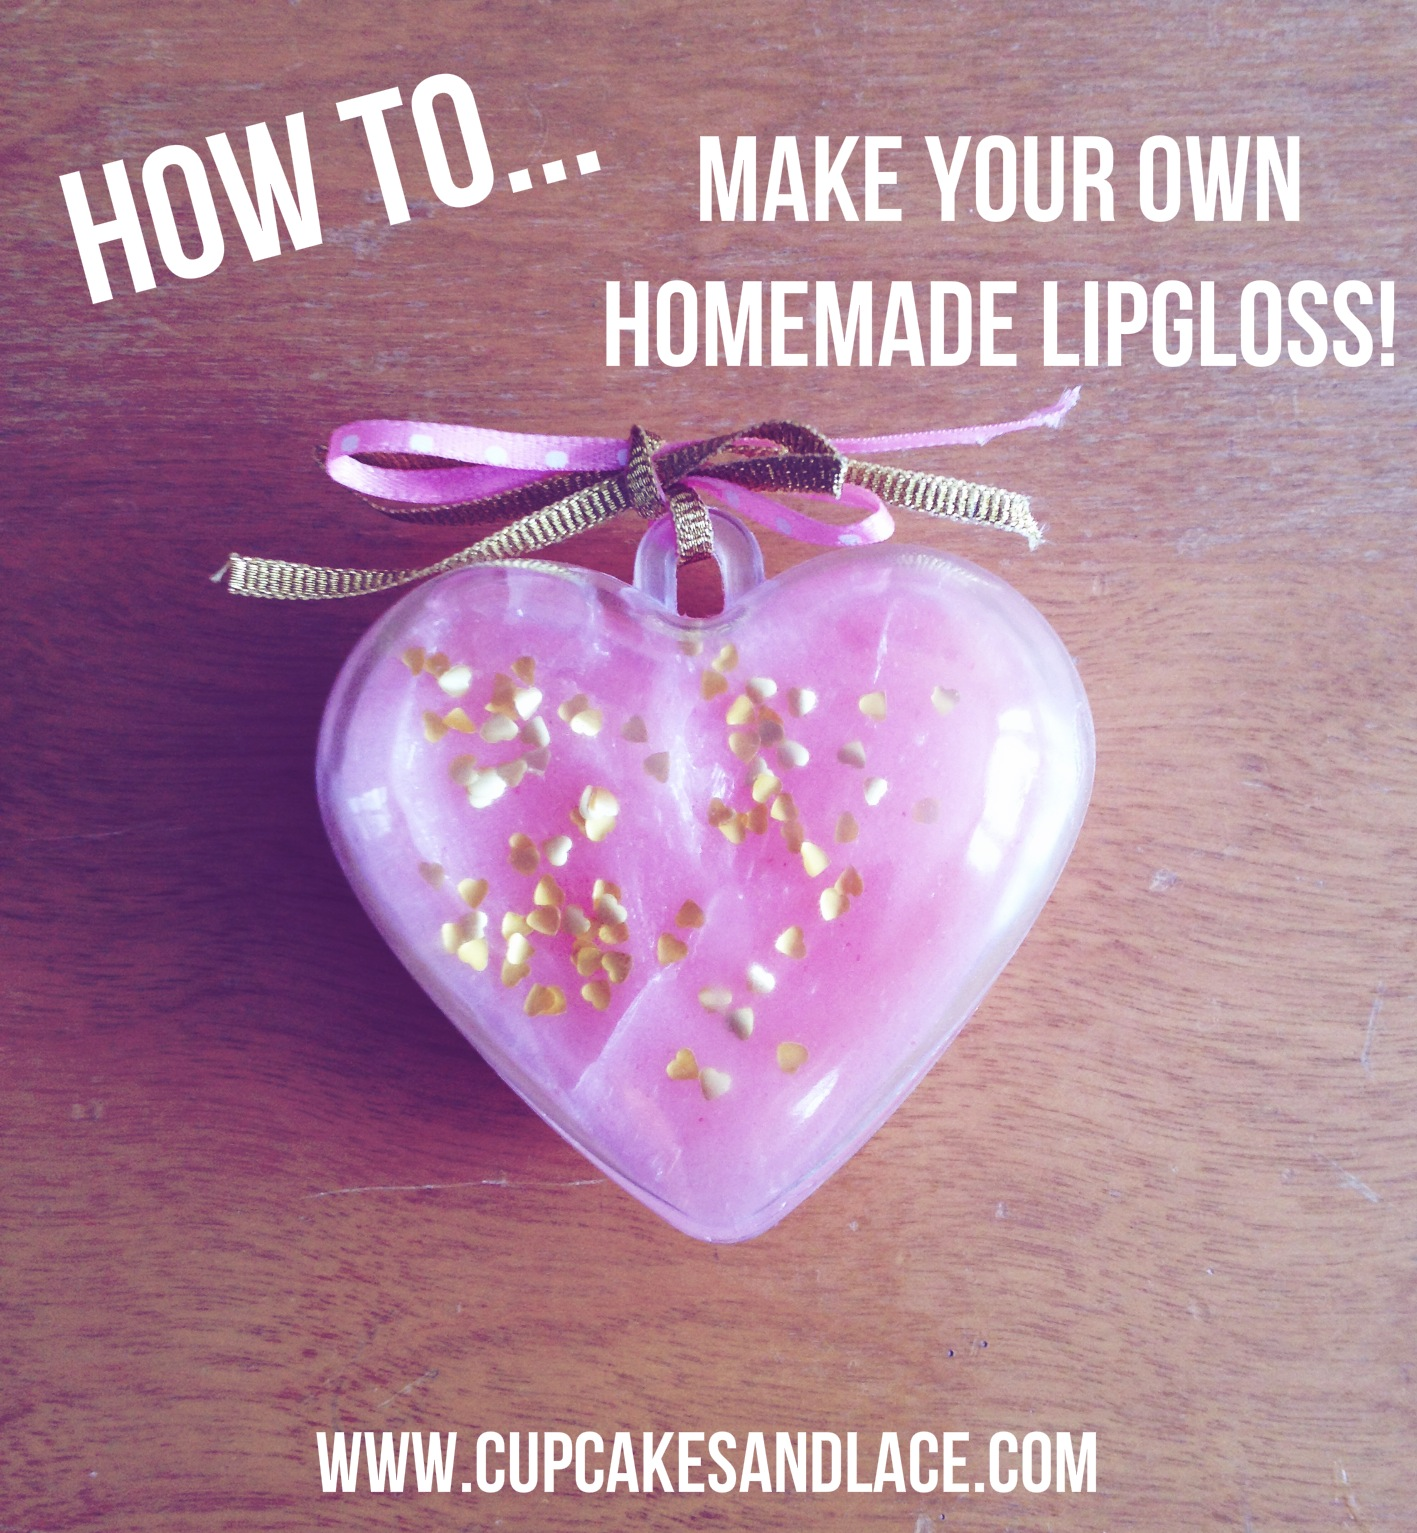 Craft Your Own Homemade Lip Gloss With Cute Edible Gold Hearts